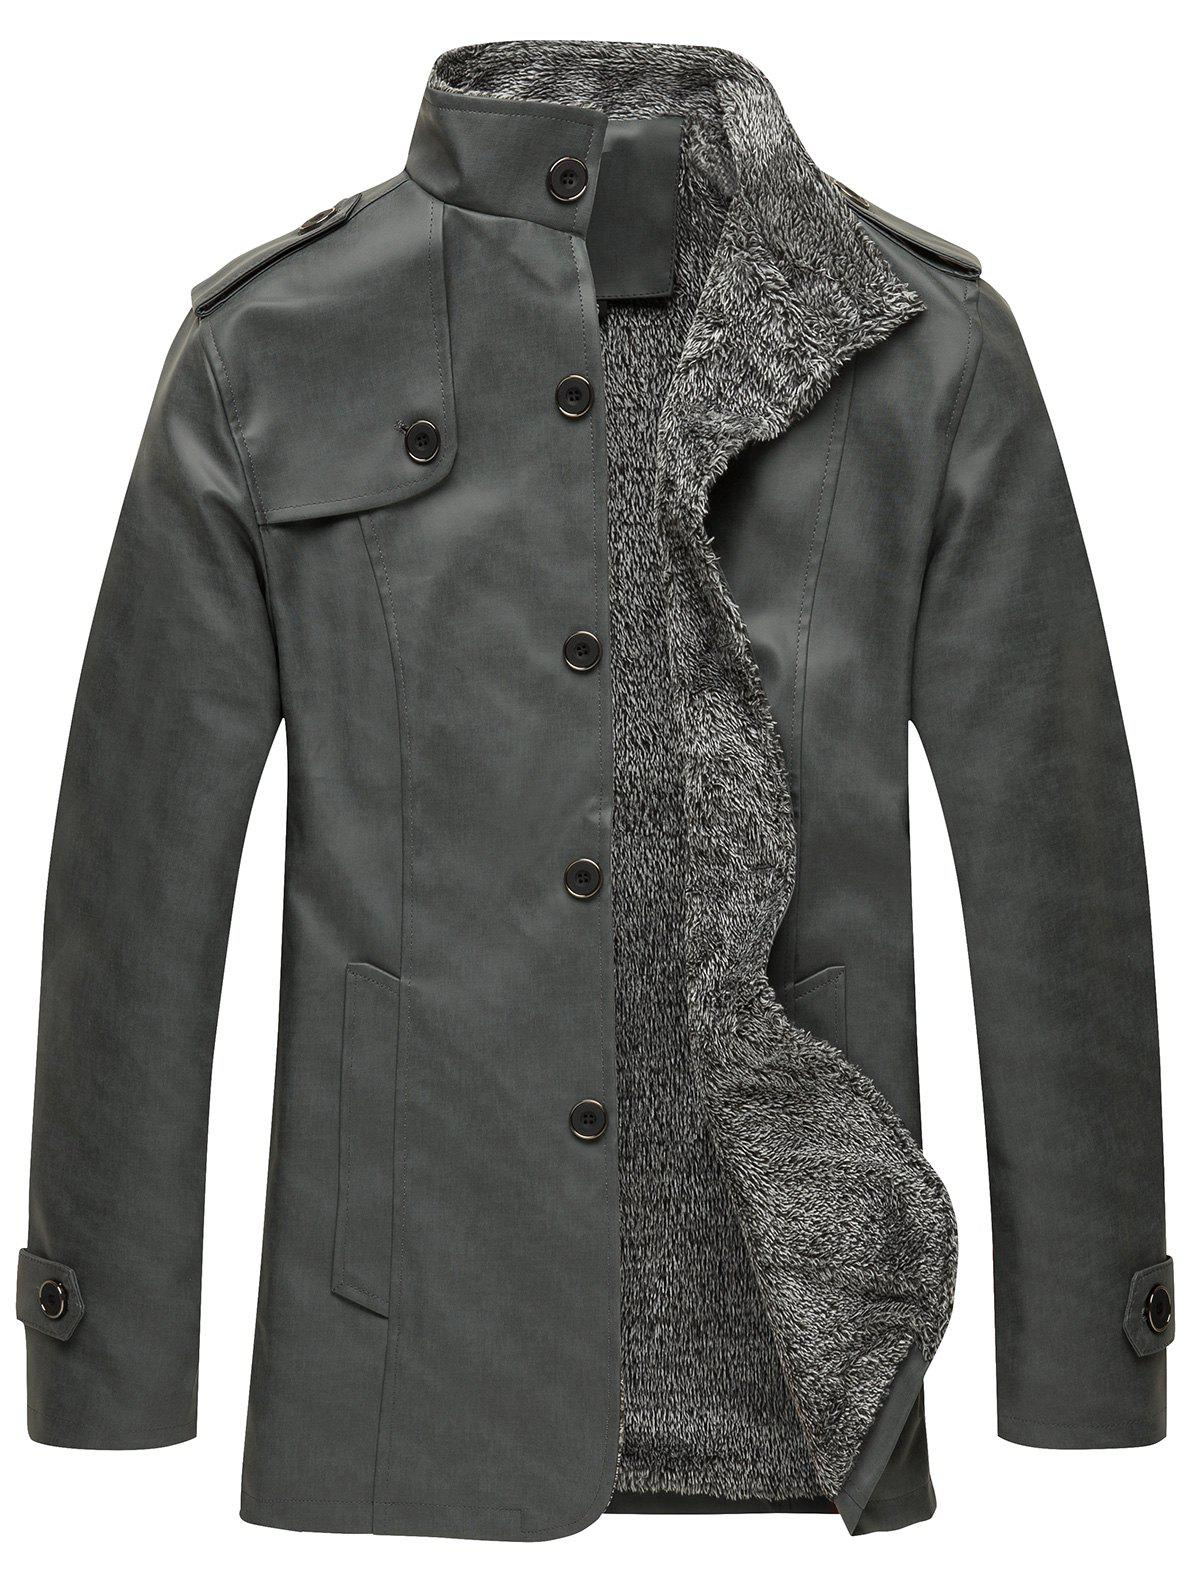 Stand Collar Single Breasted Epaulet Design Coat - DARK GRAY 2XL